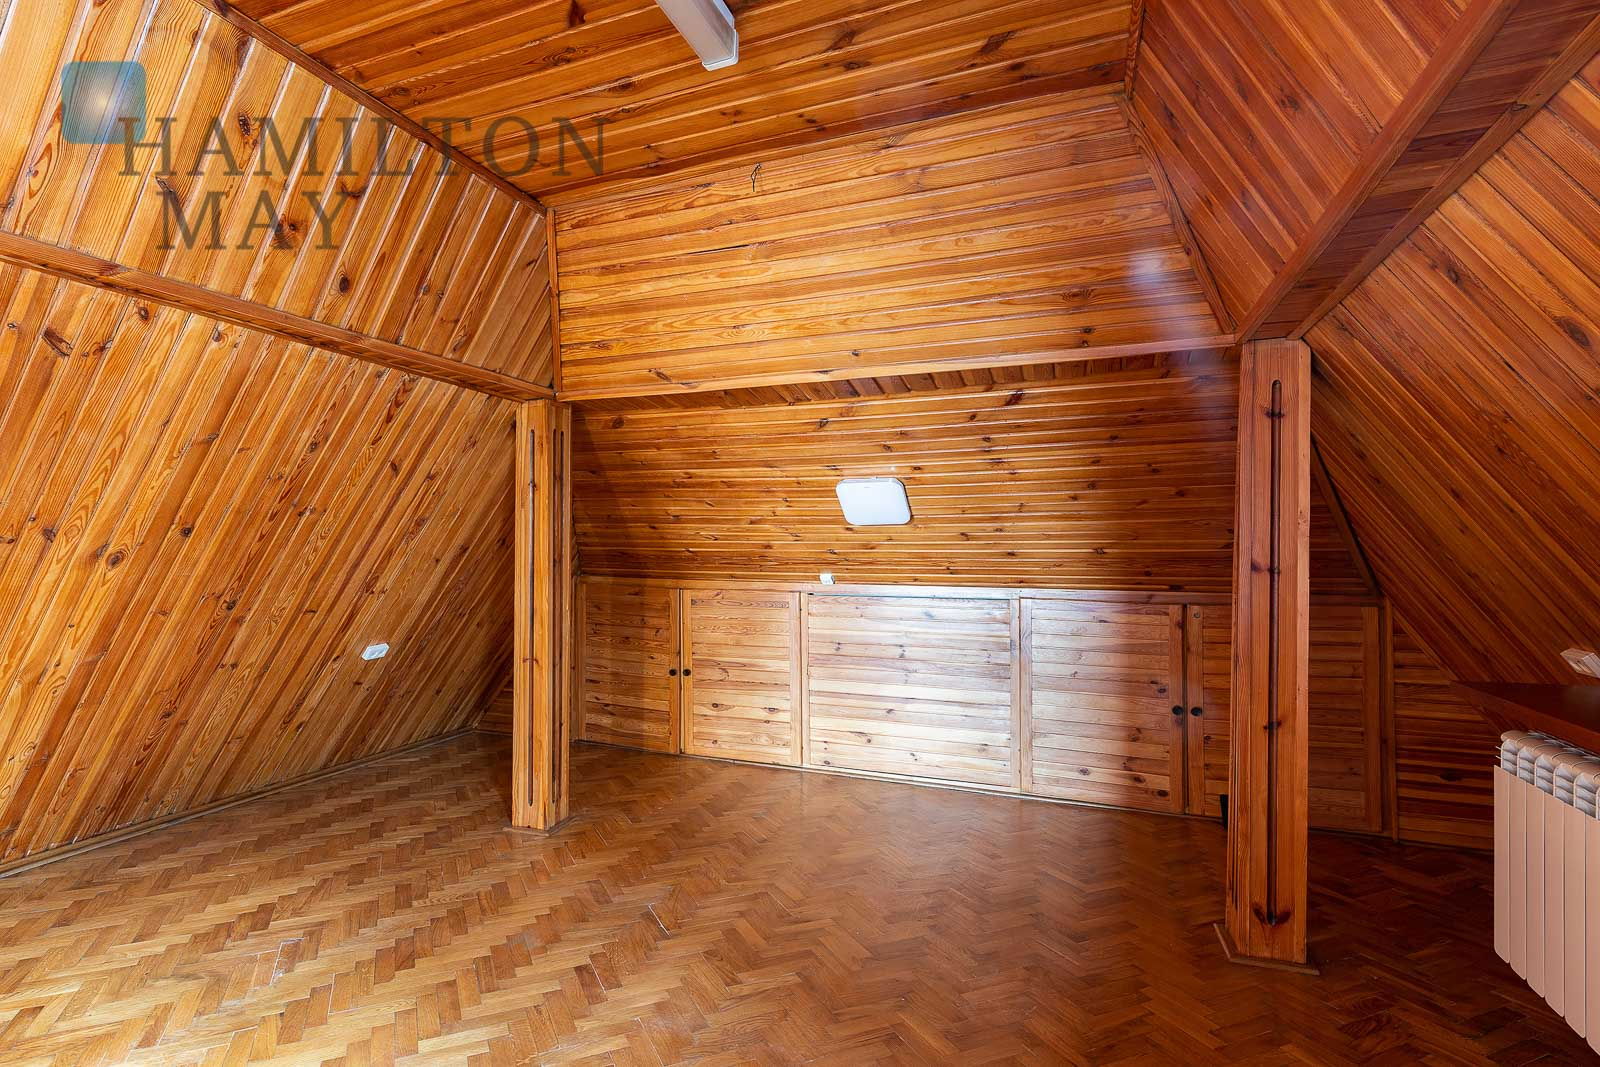 Spacious detached house on Old Wilanow Warsaw for rent